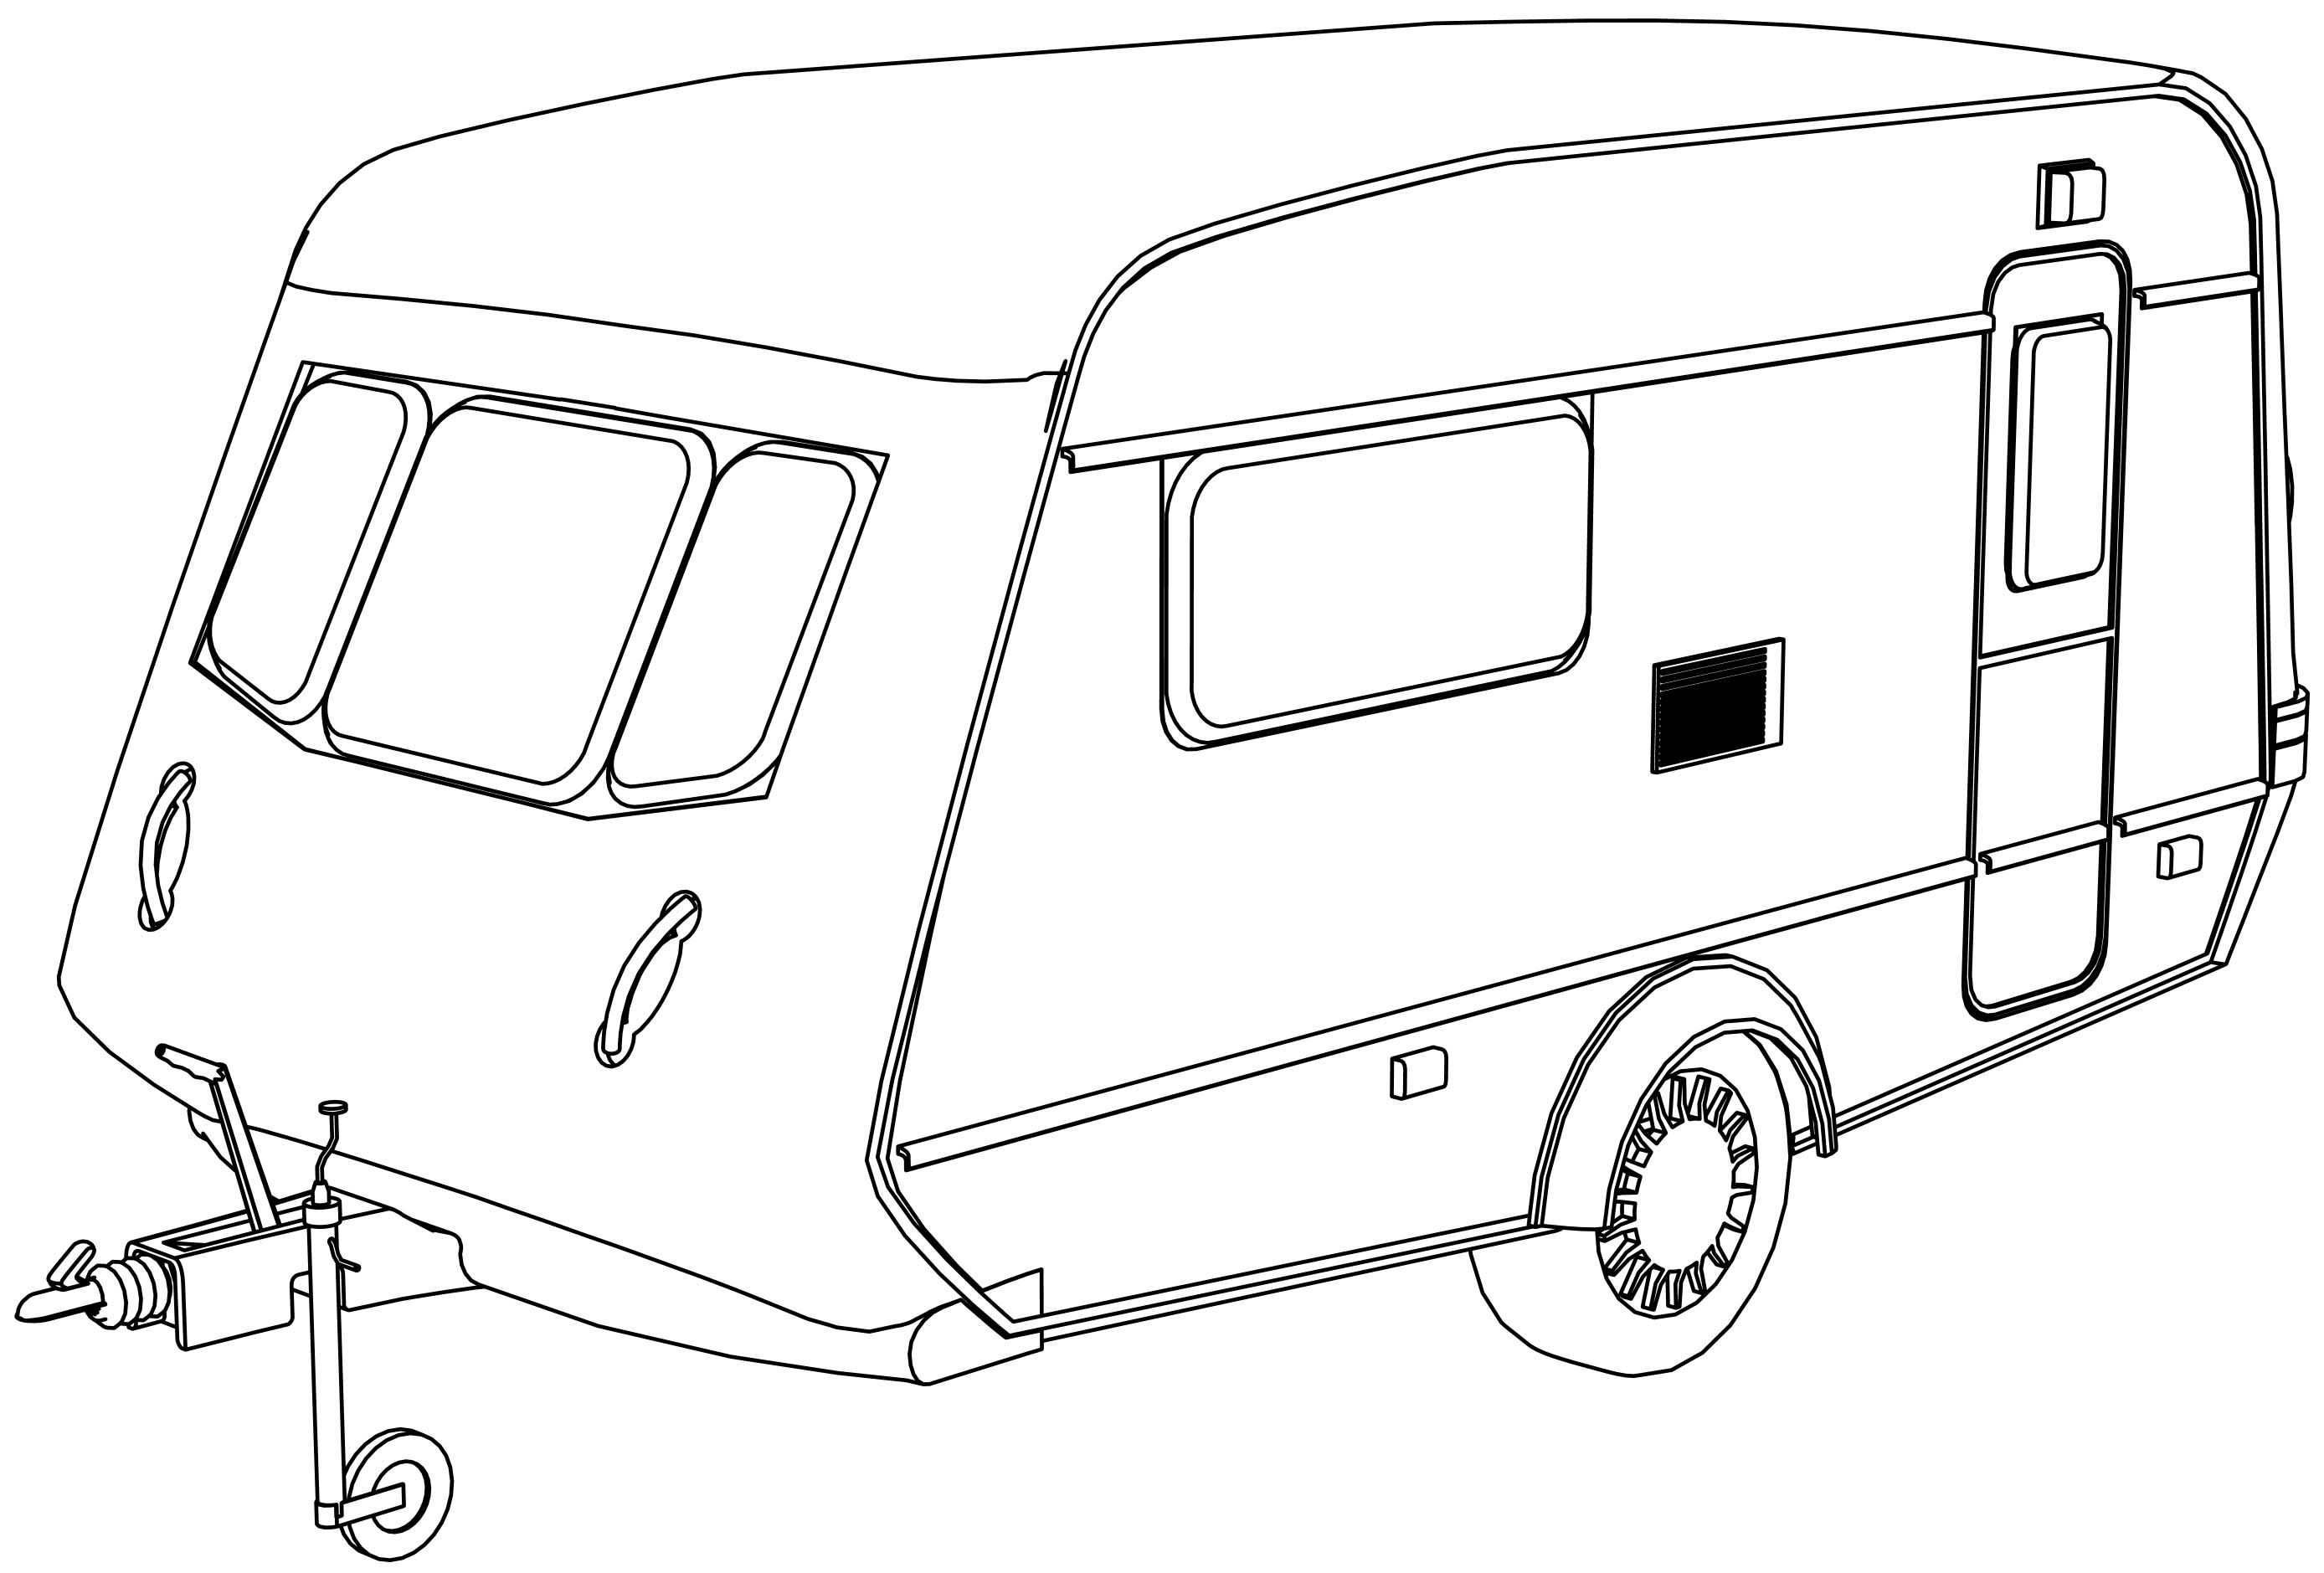 Camper Back Coloring Page | Wecoloringpage.com